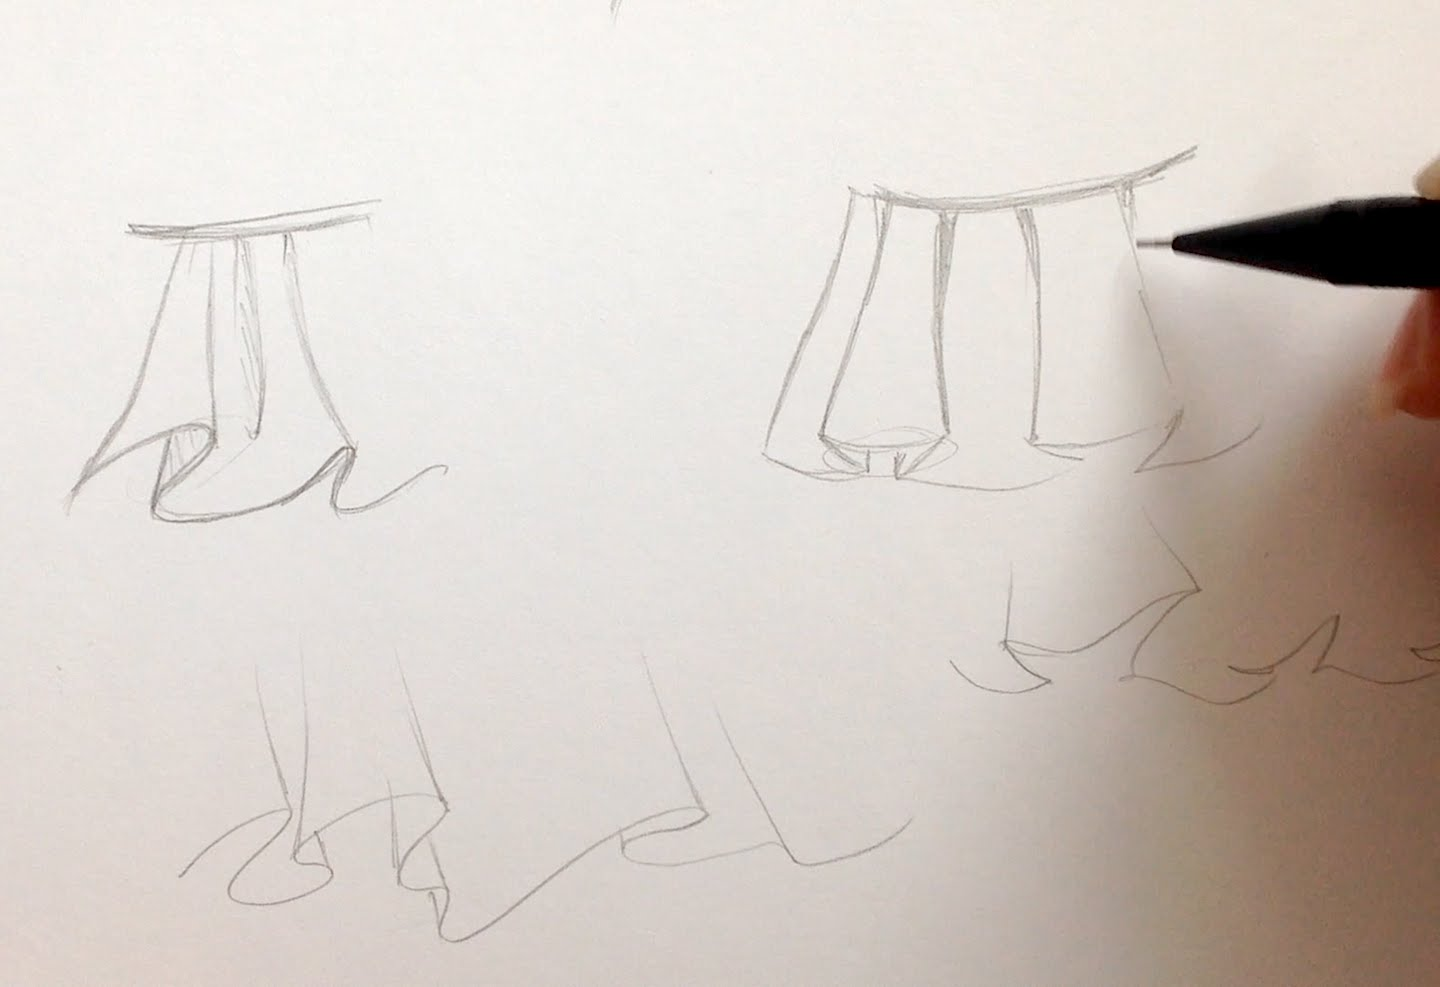 1440x987 How To Draw Manga Clothes Wrinkles And Skirts [The Lazy Way]